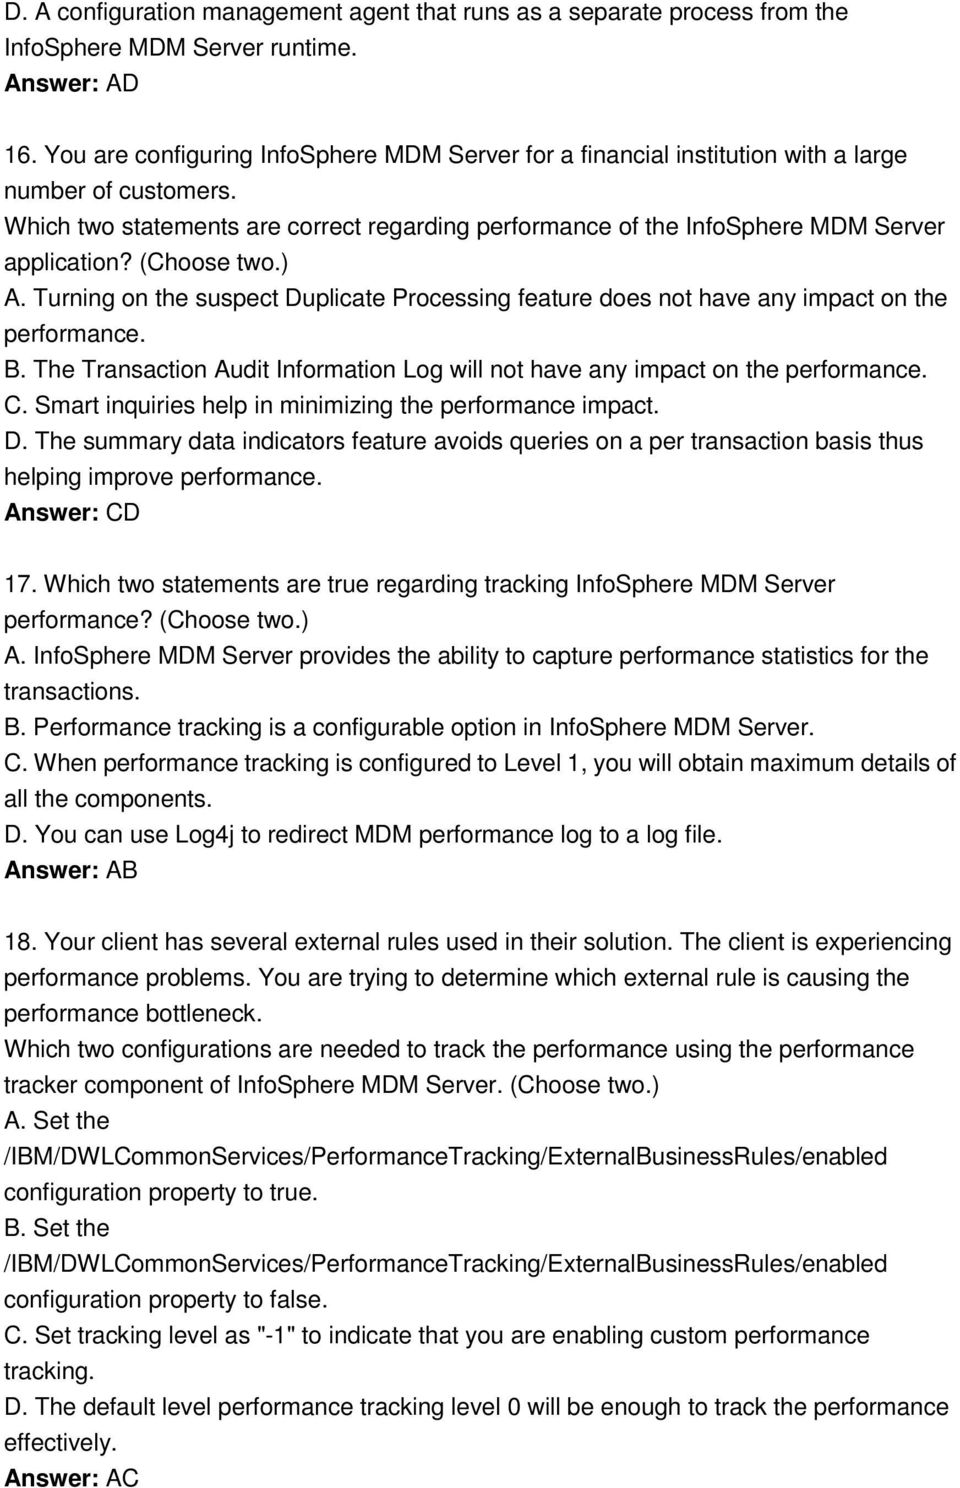 (Choose two.) A. Turning on the suspect Duplicate Processing feature does not have any impact on the performance. B. The Transaction Audit Information Log will not have any impact on the performance.